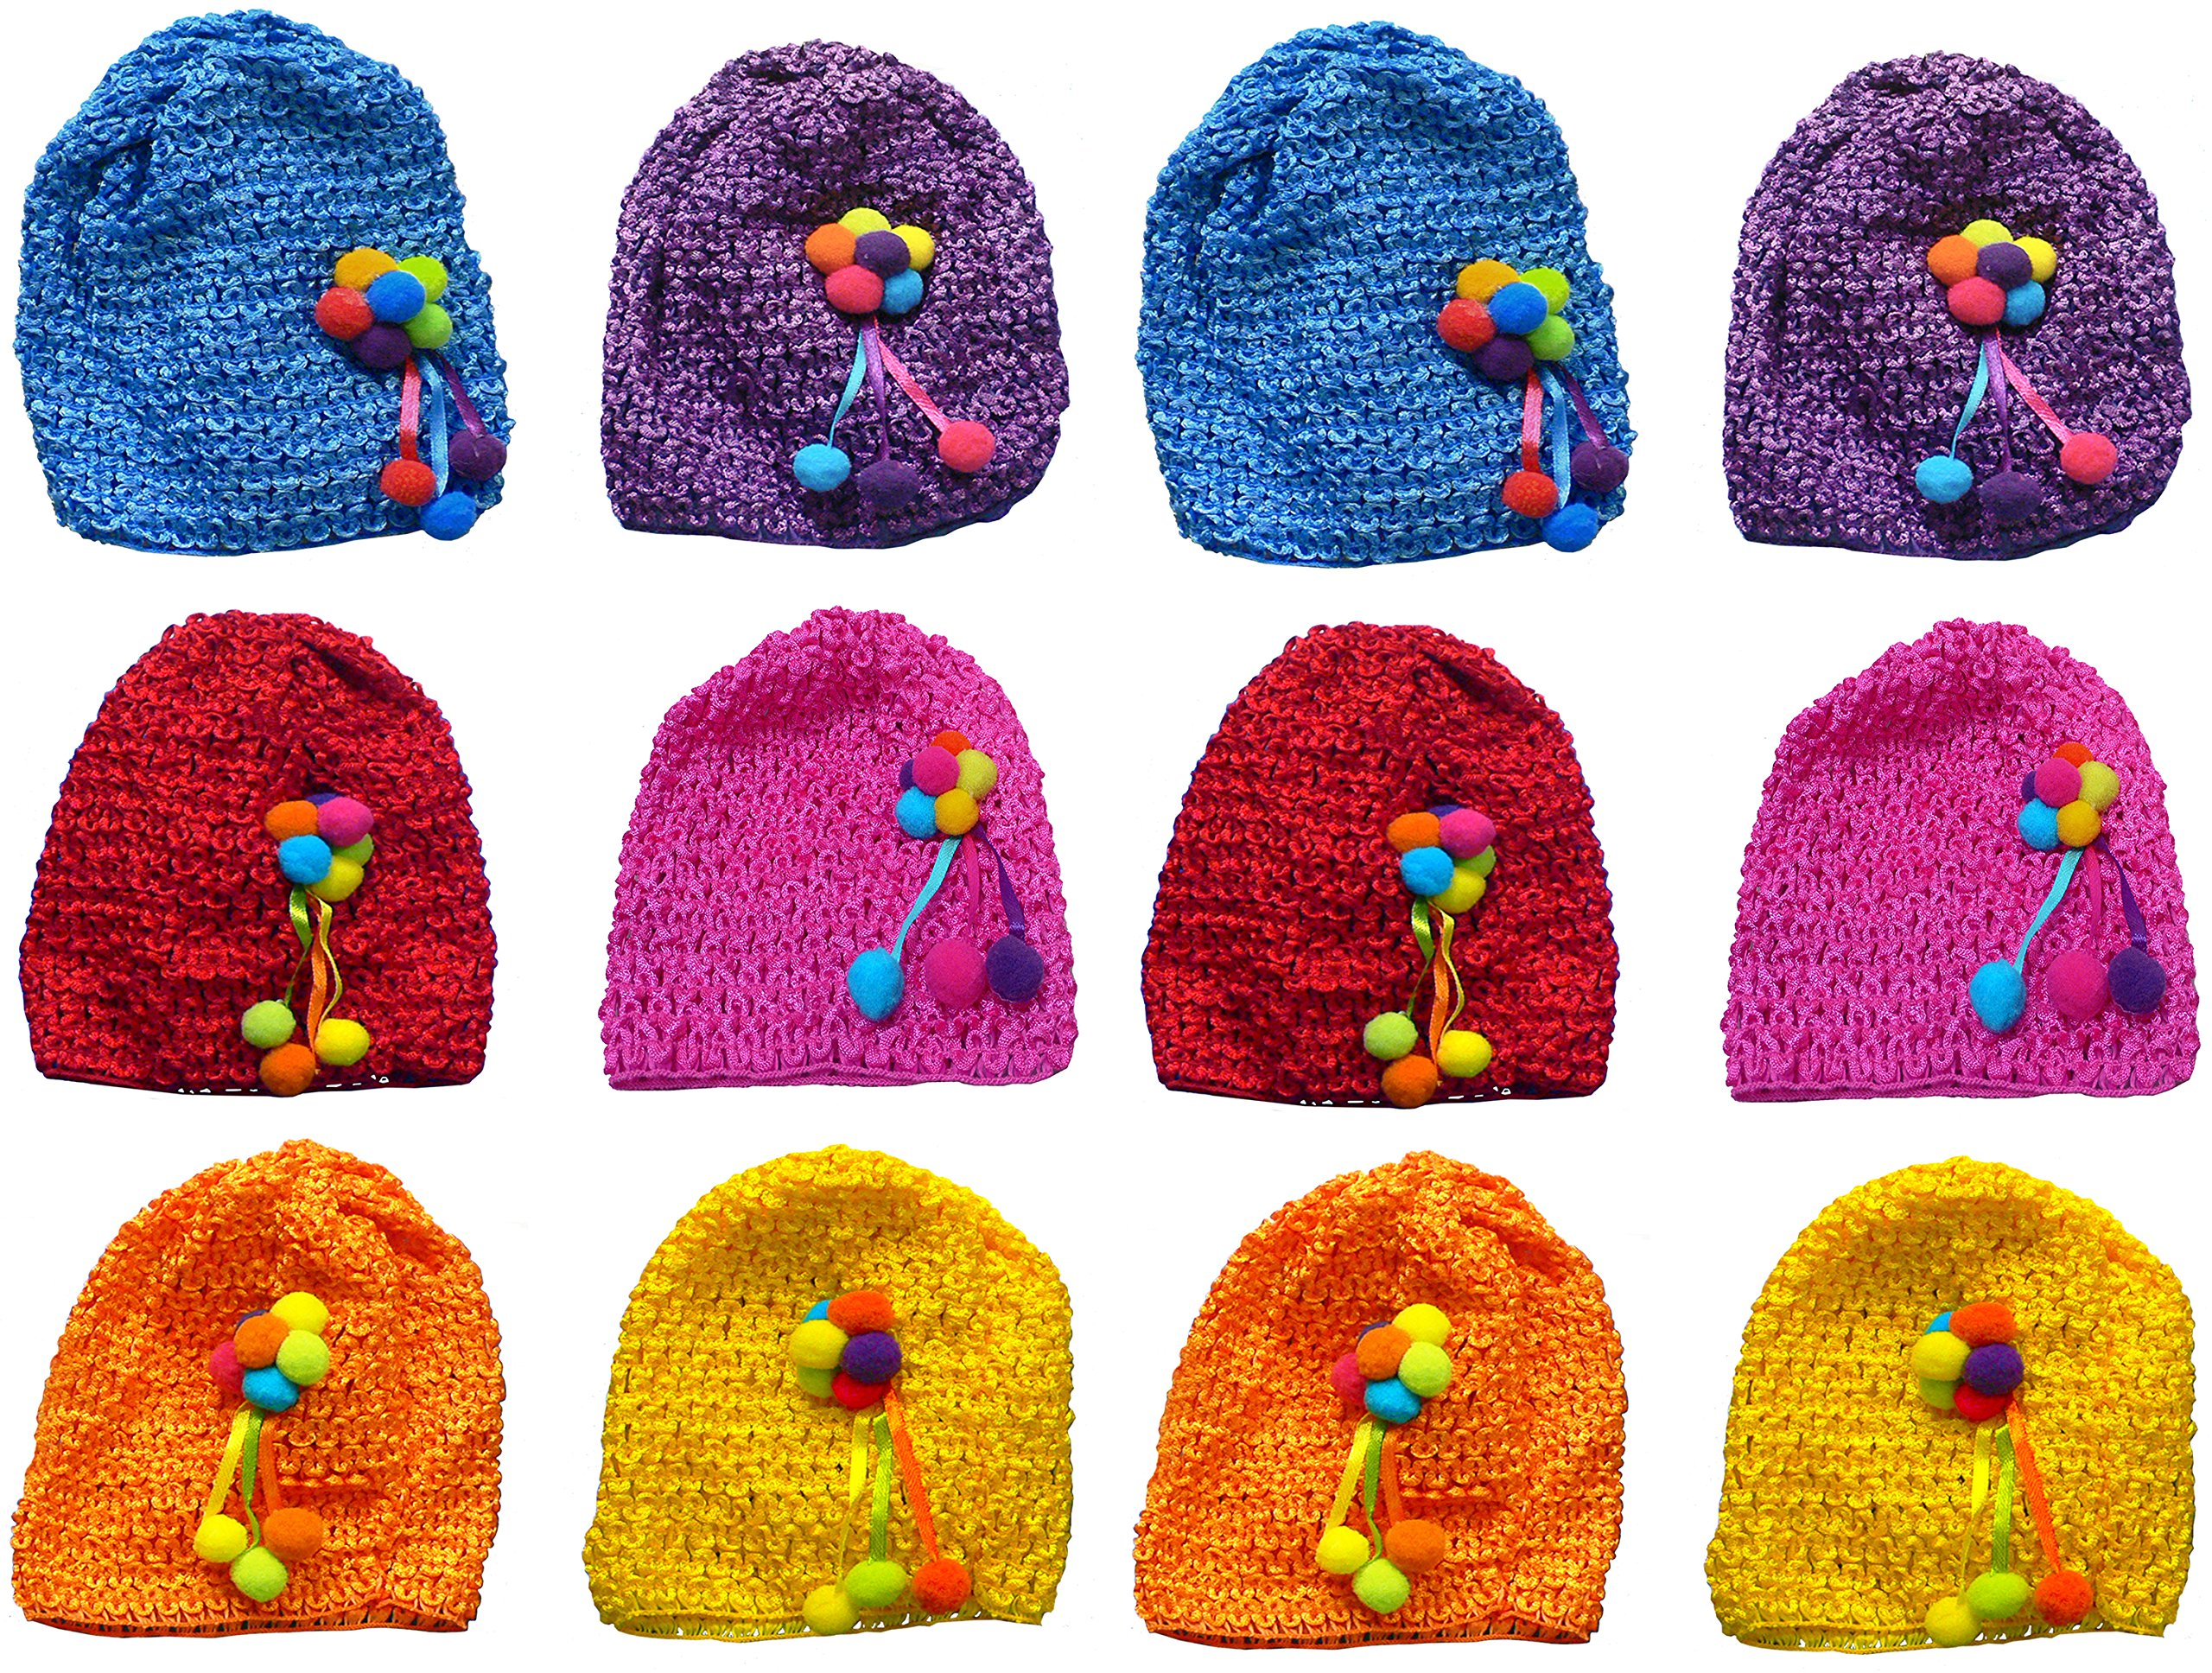 Dozen Pack Toddler's Stretchy Knitted Bonnets with Ornement, 2 Ea of 6 Colors U16250-6412-D